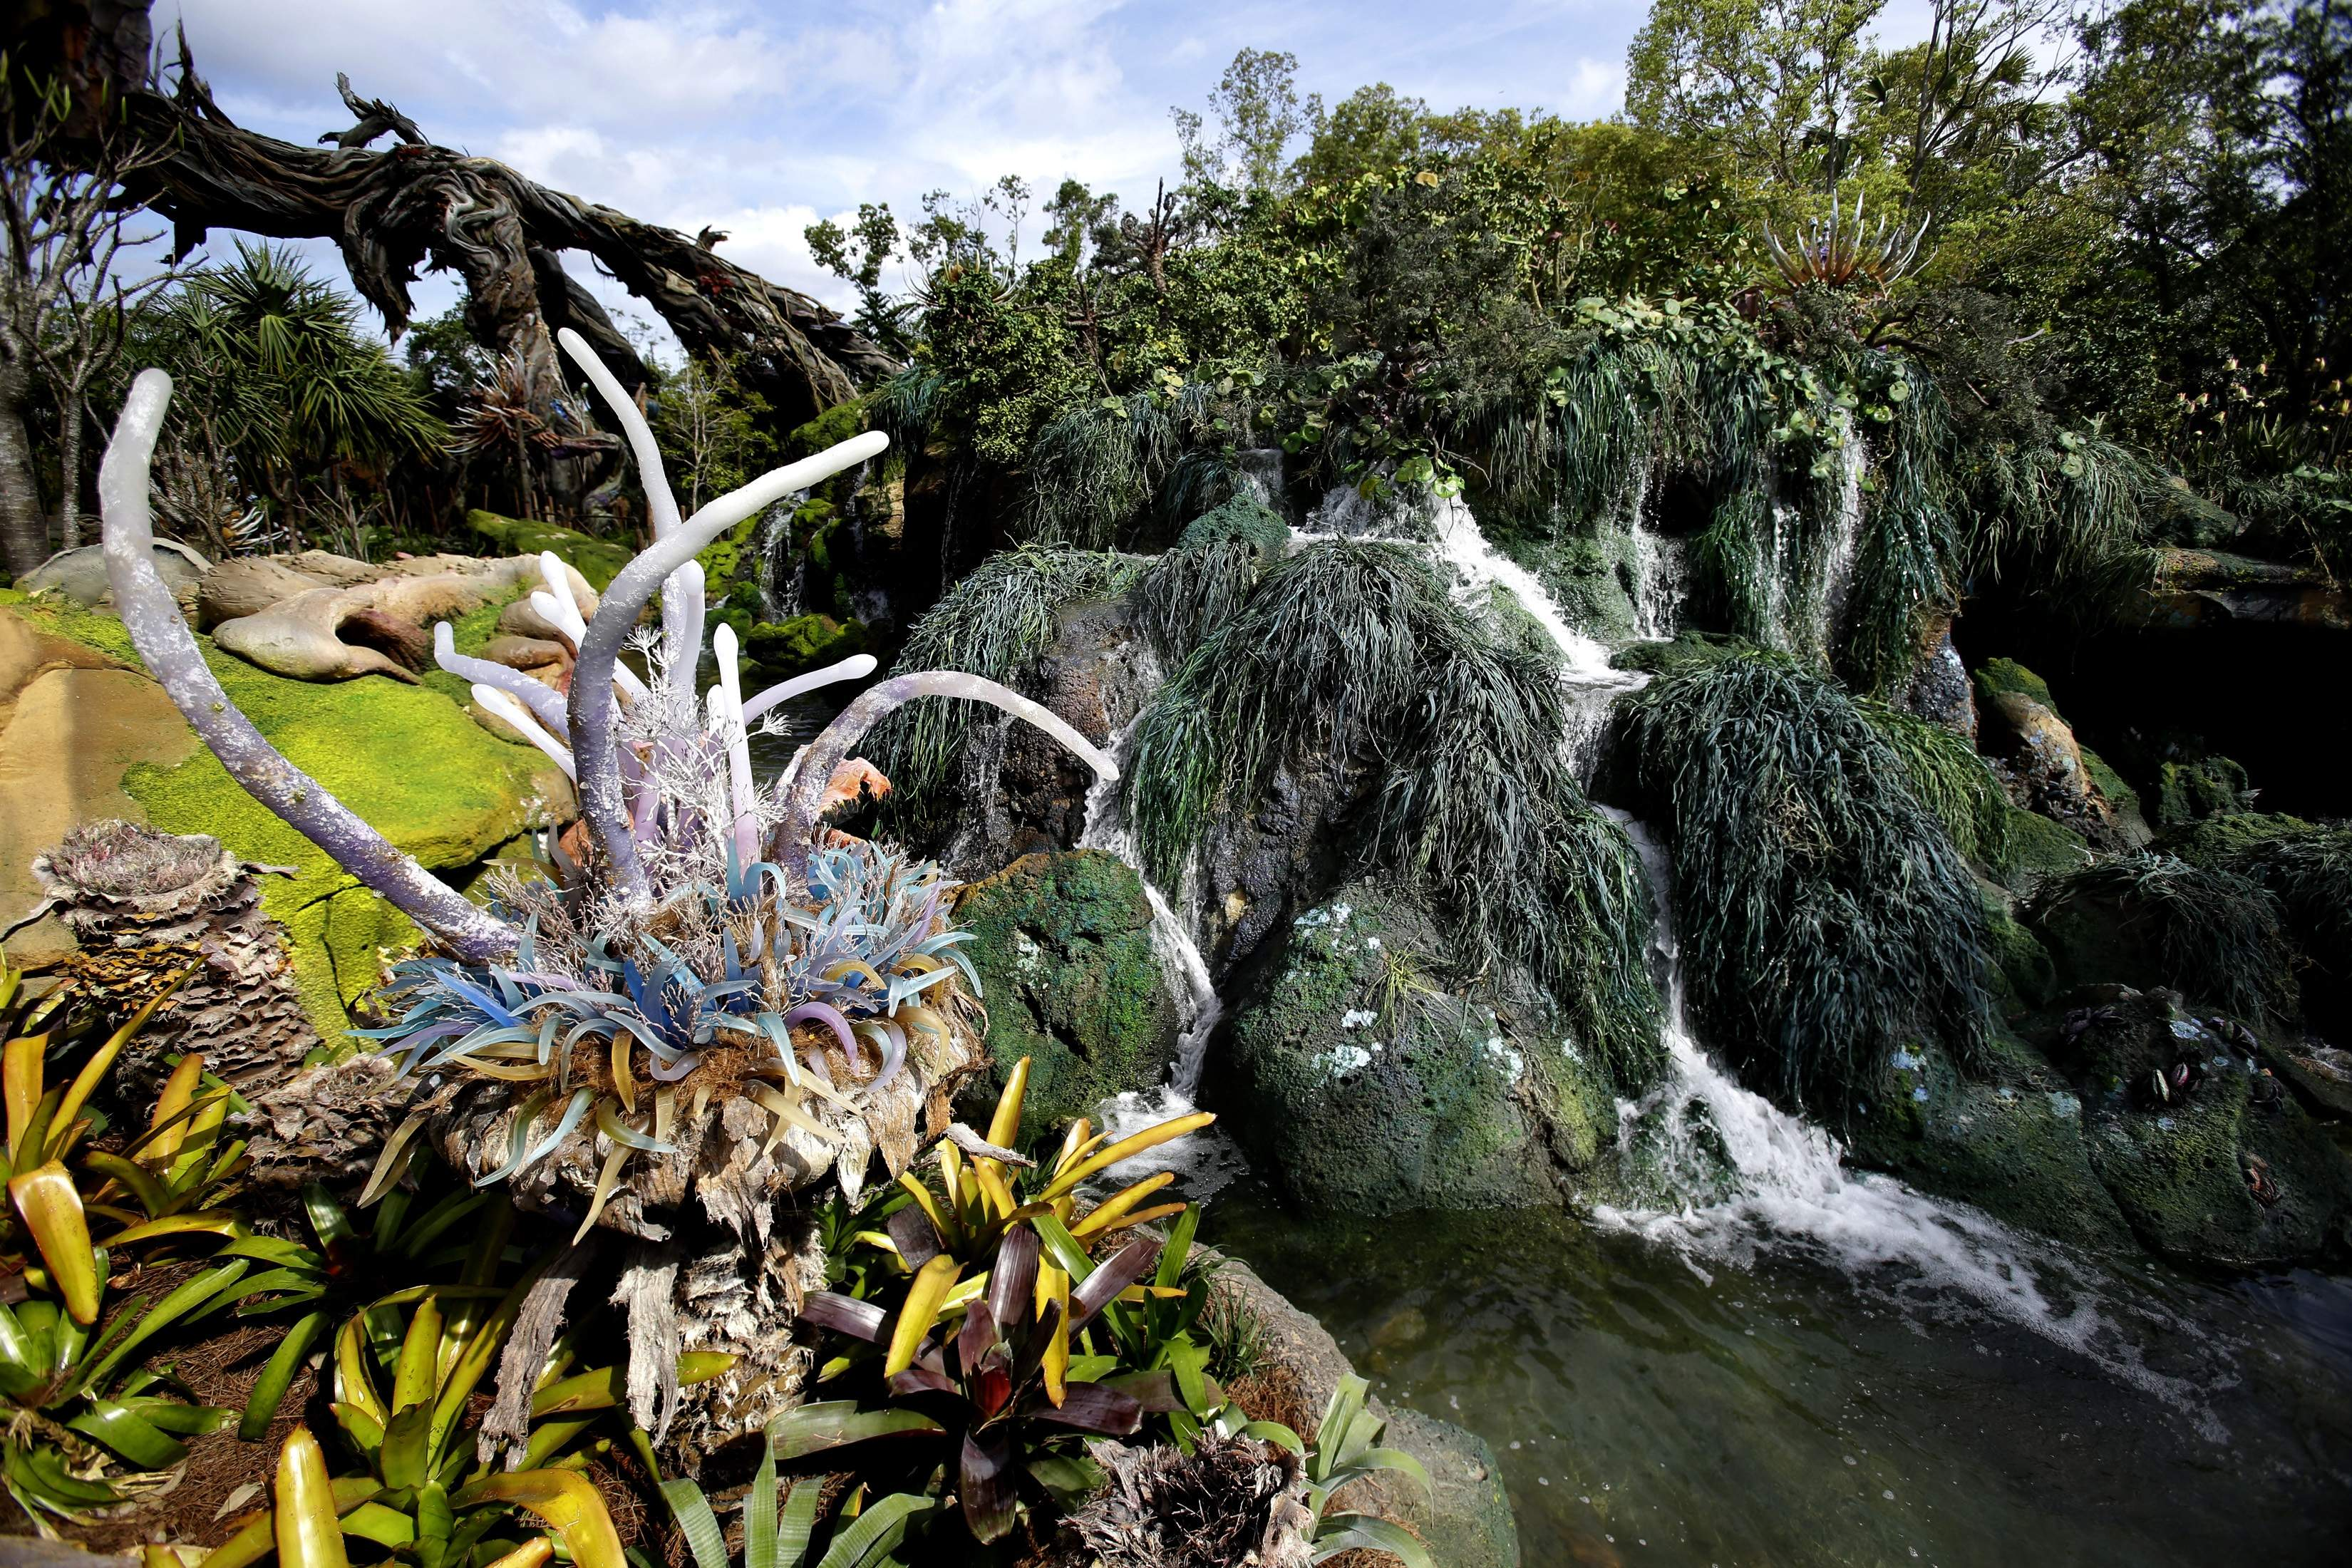 In this Saturday, April 29, 2017, photo, landscaping consisting of real Earth plant species mixed with sculpted Pandora artificial flora is surrounded by ponds and gentle waterfalls at the Pandora-World of Avatar land attraction in Disney's Animal Kingdom theme park at Walt Disney World in Lake Buena Vista, Fla. The 12-acre land, inspired by the 'Avatar' movie, opens in Florida at the end of May at Walt Disney World's Animal Kingdom. It cost a half-billion dollars. THE ASSOCIATED PRESS